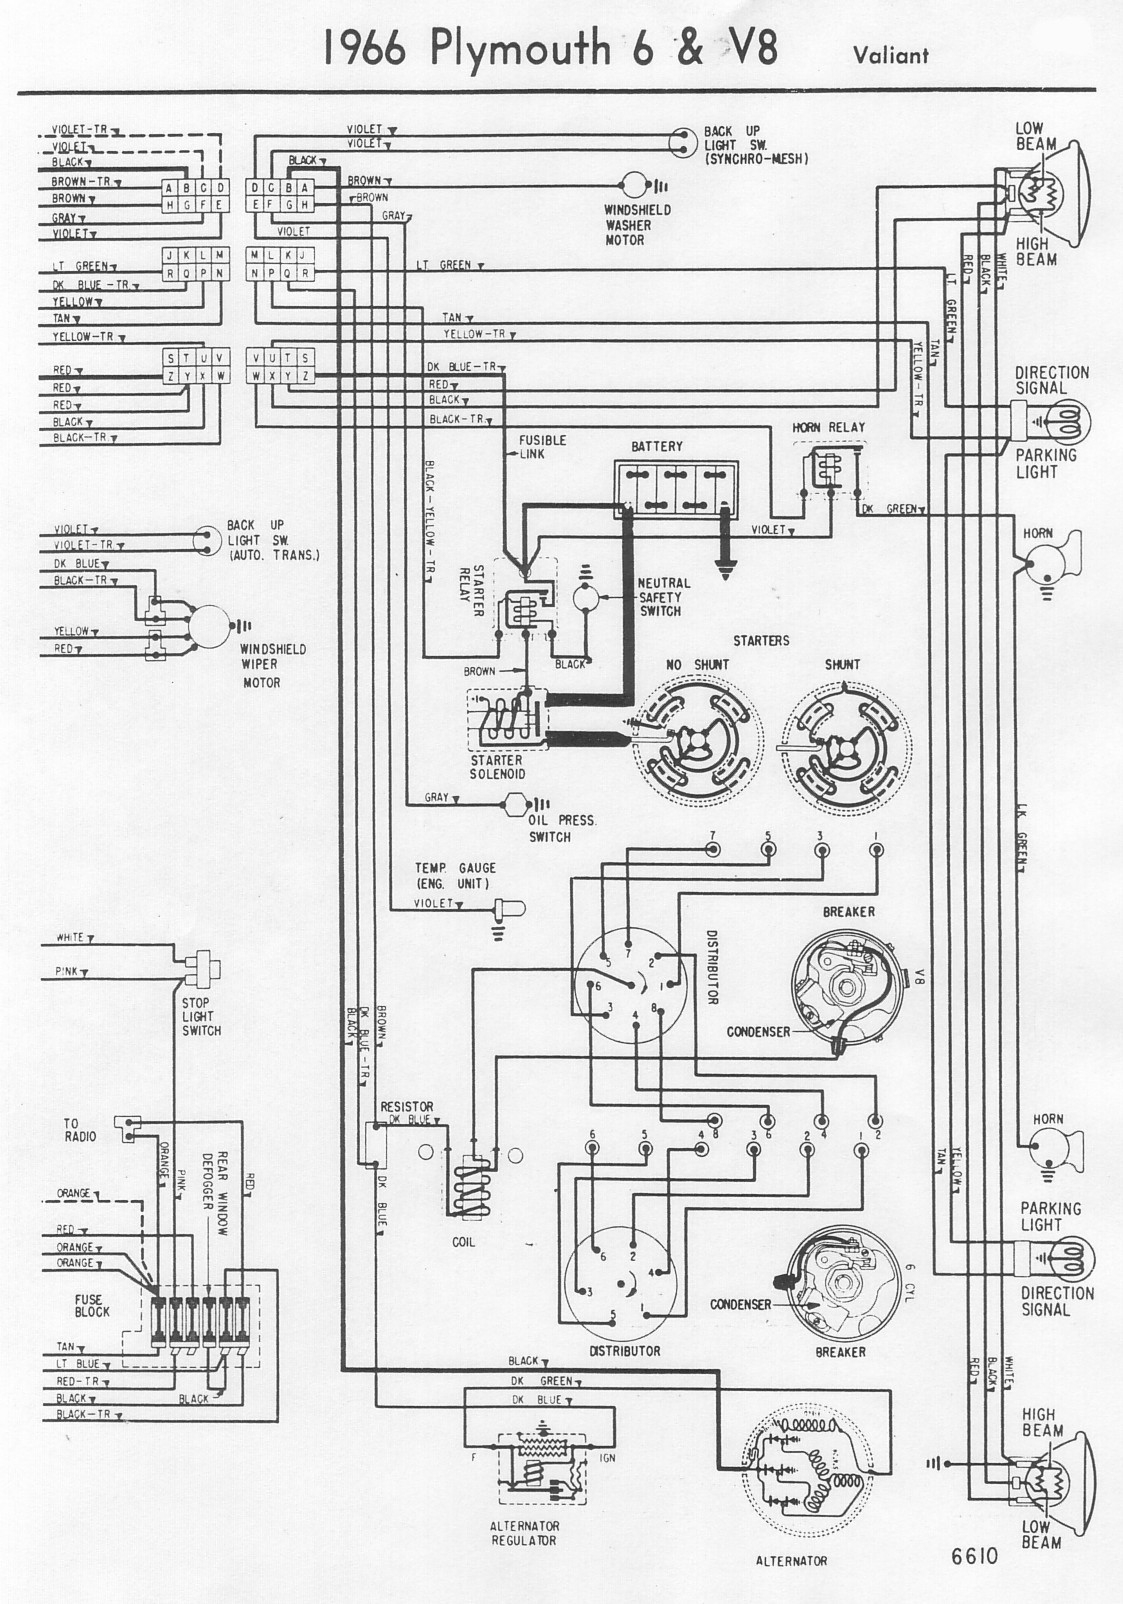 Scamp Trailer Wiring Diagram | Wiring Diagram - Scamp Trailer Wiring Diagram